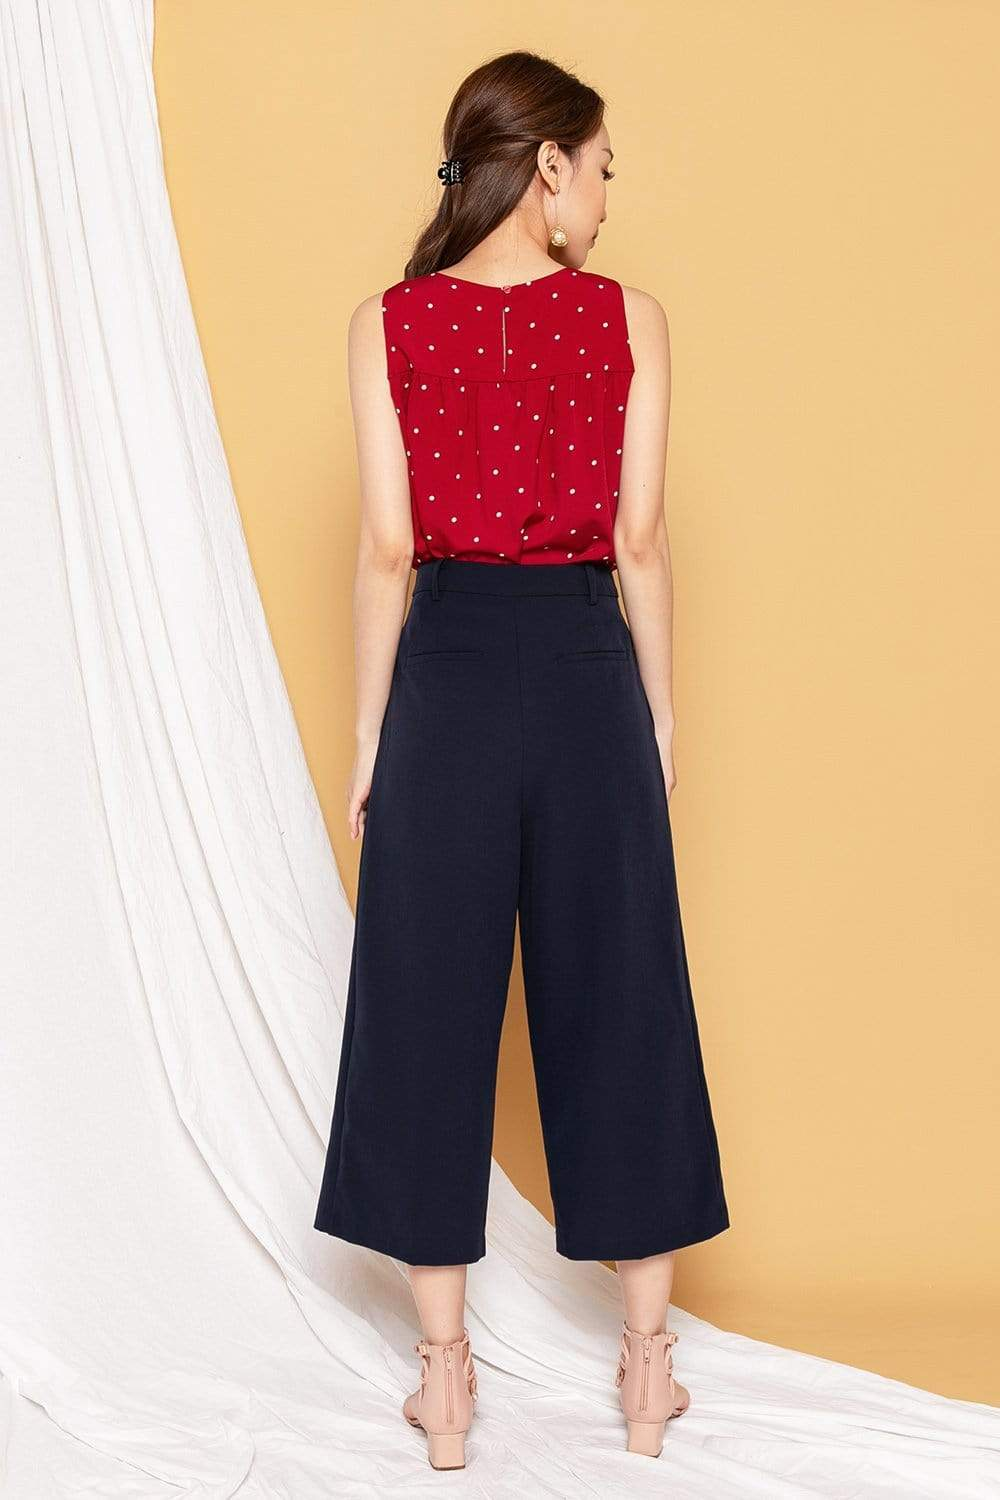 REIGN NAVY POCKET CULOTTES